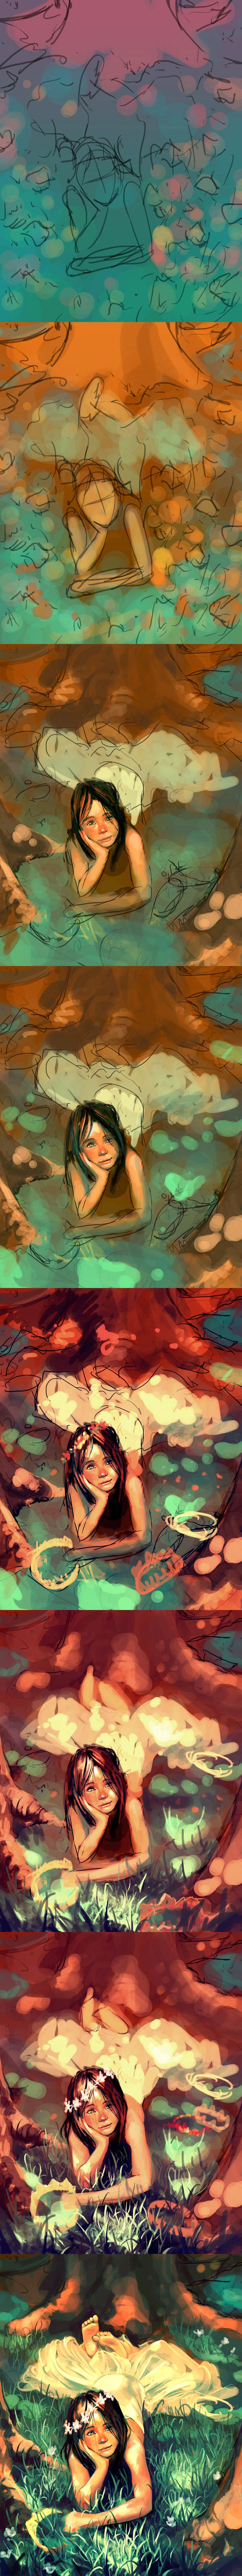 WIP Autumn coronation by `AquaSixio on deviantART ✤ || CHARACTER DESIGN REFERENCES | キャラクターデザイン | çizgi film • Find more at https://www.facebook.com/CharacterDesignReferences & http://www.pinterest.com/characterdesigh if you're looking for: #color #theory #contrast #animation #how #to #draw #paint #drawing #tutorial #lesson #balance #sketch #colors #painting #process #line #art #comics #tips #cartoon || ✤